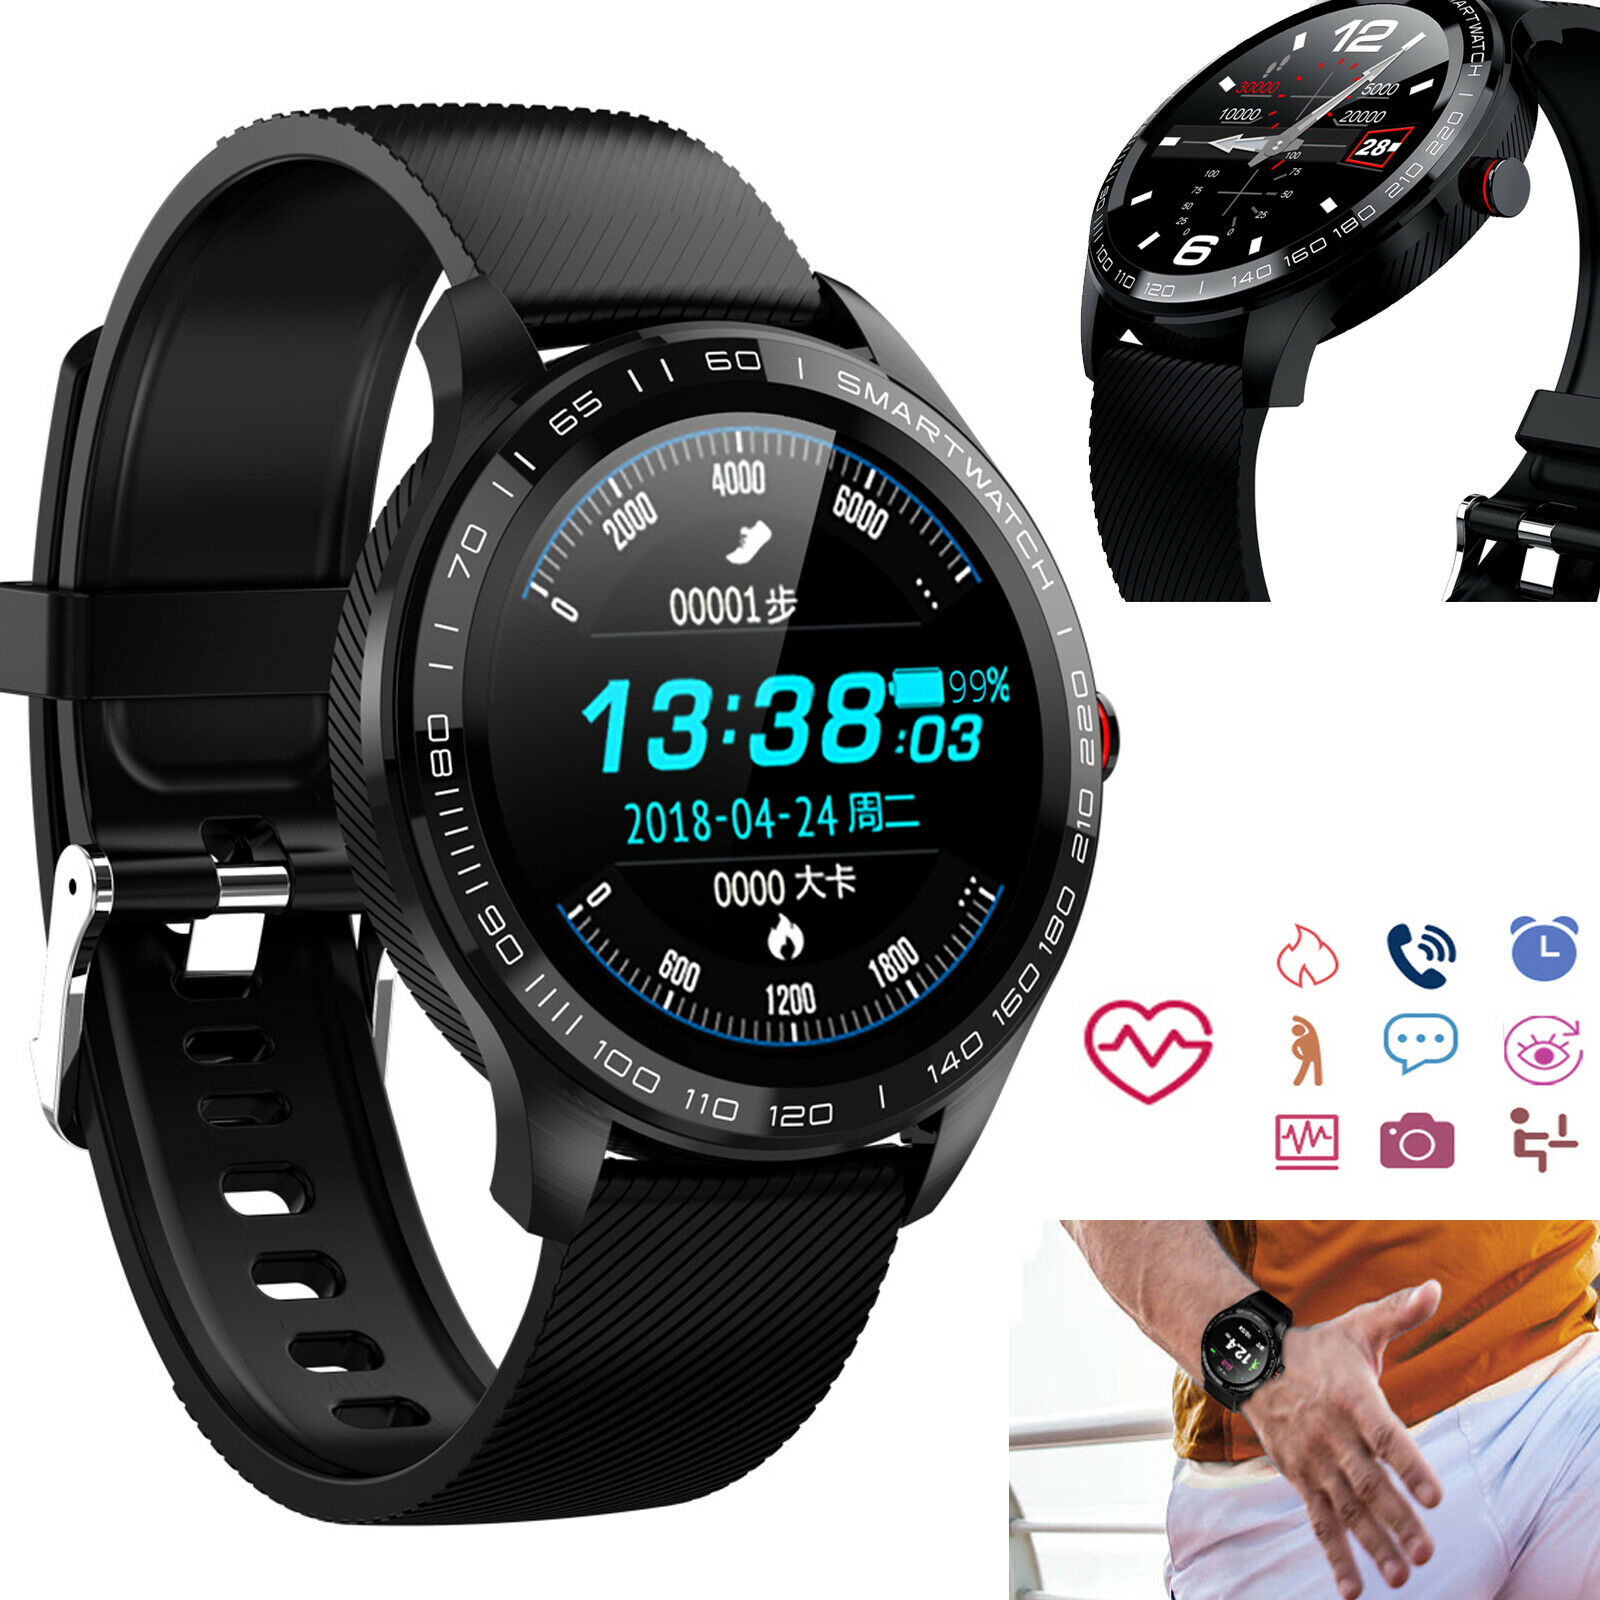 Smart Watch Heart Rate Monitor Wristwatch for Samsung S9 S10 A10 A9 LG G6 G7 G8 a10 Featured for heart monitor rate s10 samsung smart watch wristwatch